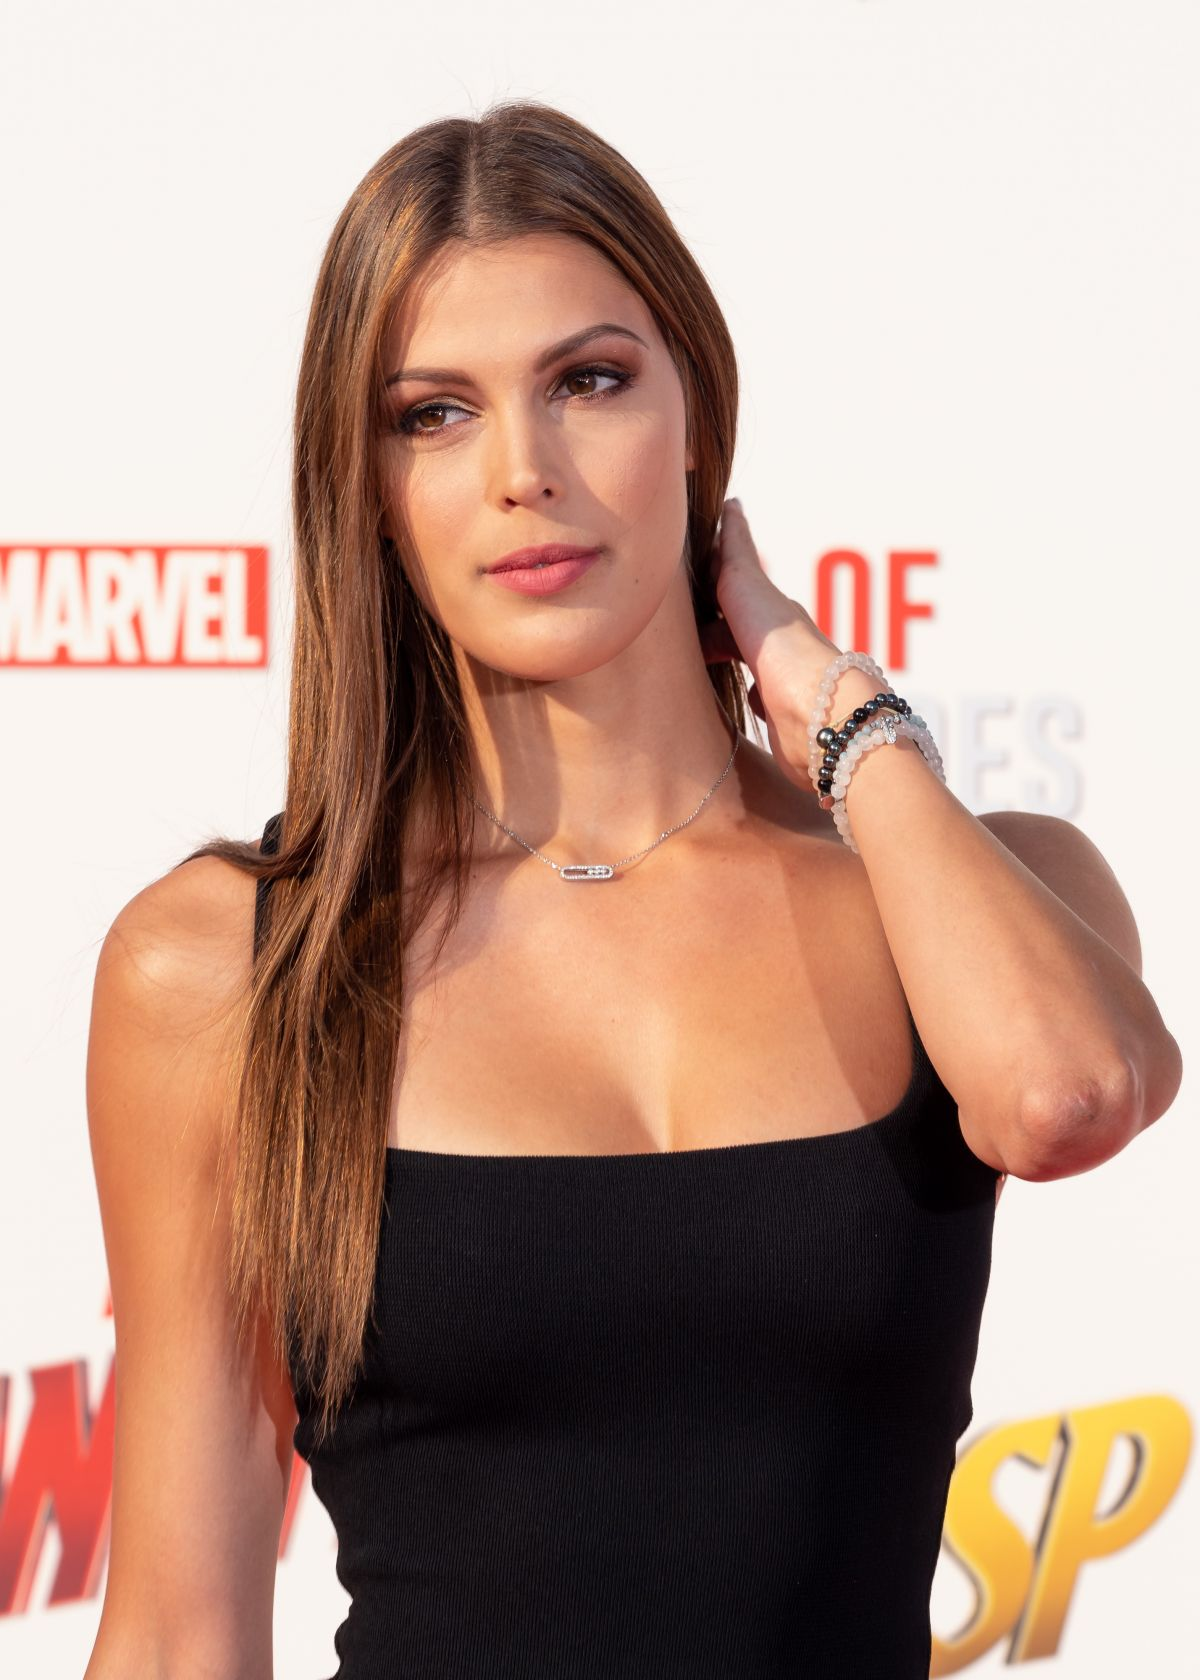 ef31d7e360c IRIS MITTENAERE at Ant-man and the Wasp Premiere in Paris 04 17 2018 ...